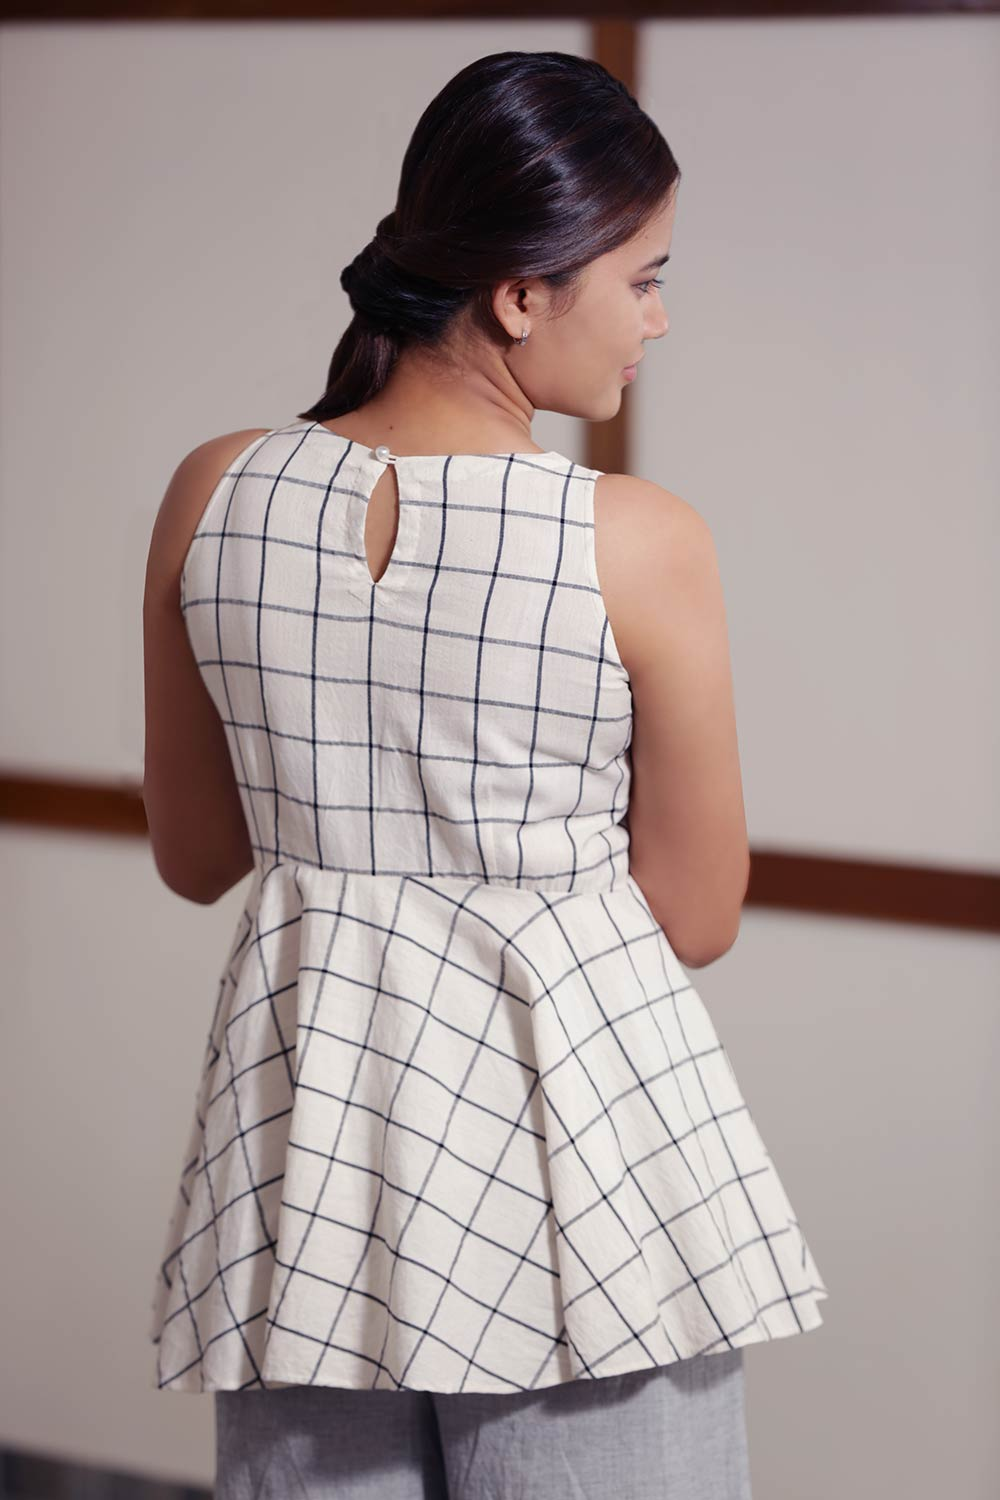 Handwoven cotton Checked Top With Flared Waist, designed by Khumanthem Atelier